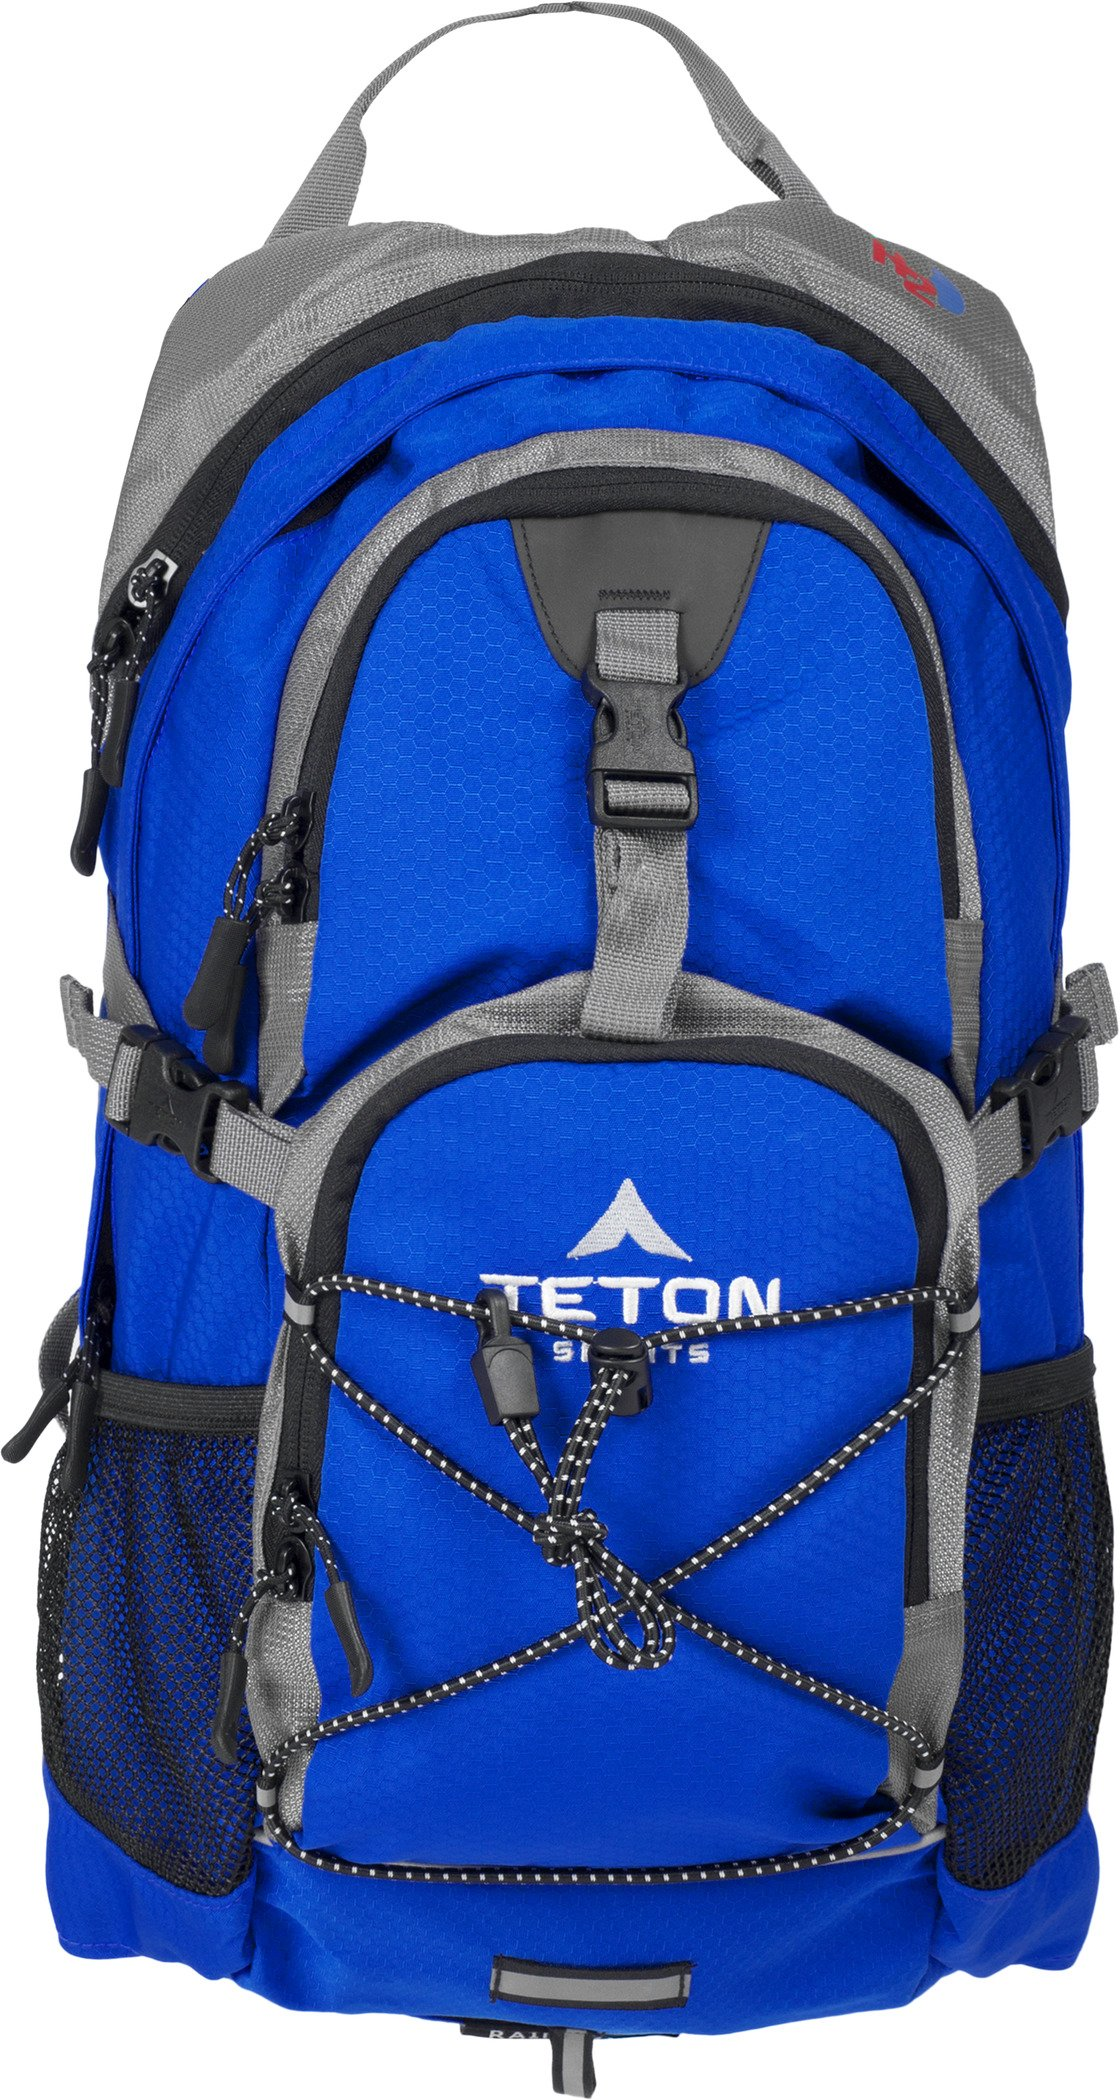 TETON Sports Oasis 1100 Hydration Pack | Free 2-Liter Hydration Bladder | Backpack design great for Hiking, Running, Cycling, and Climbing | Bright Blue by TETON Sports